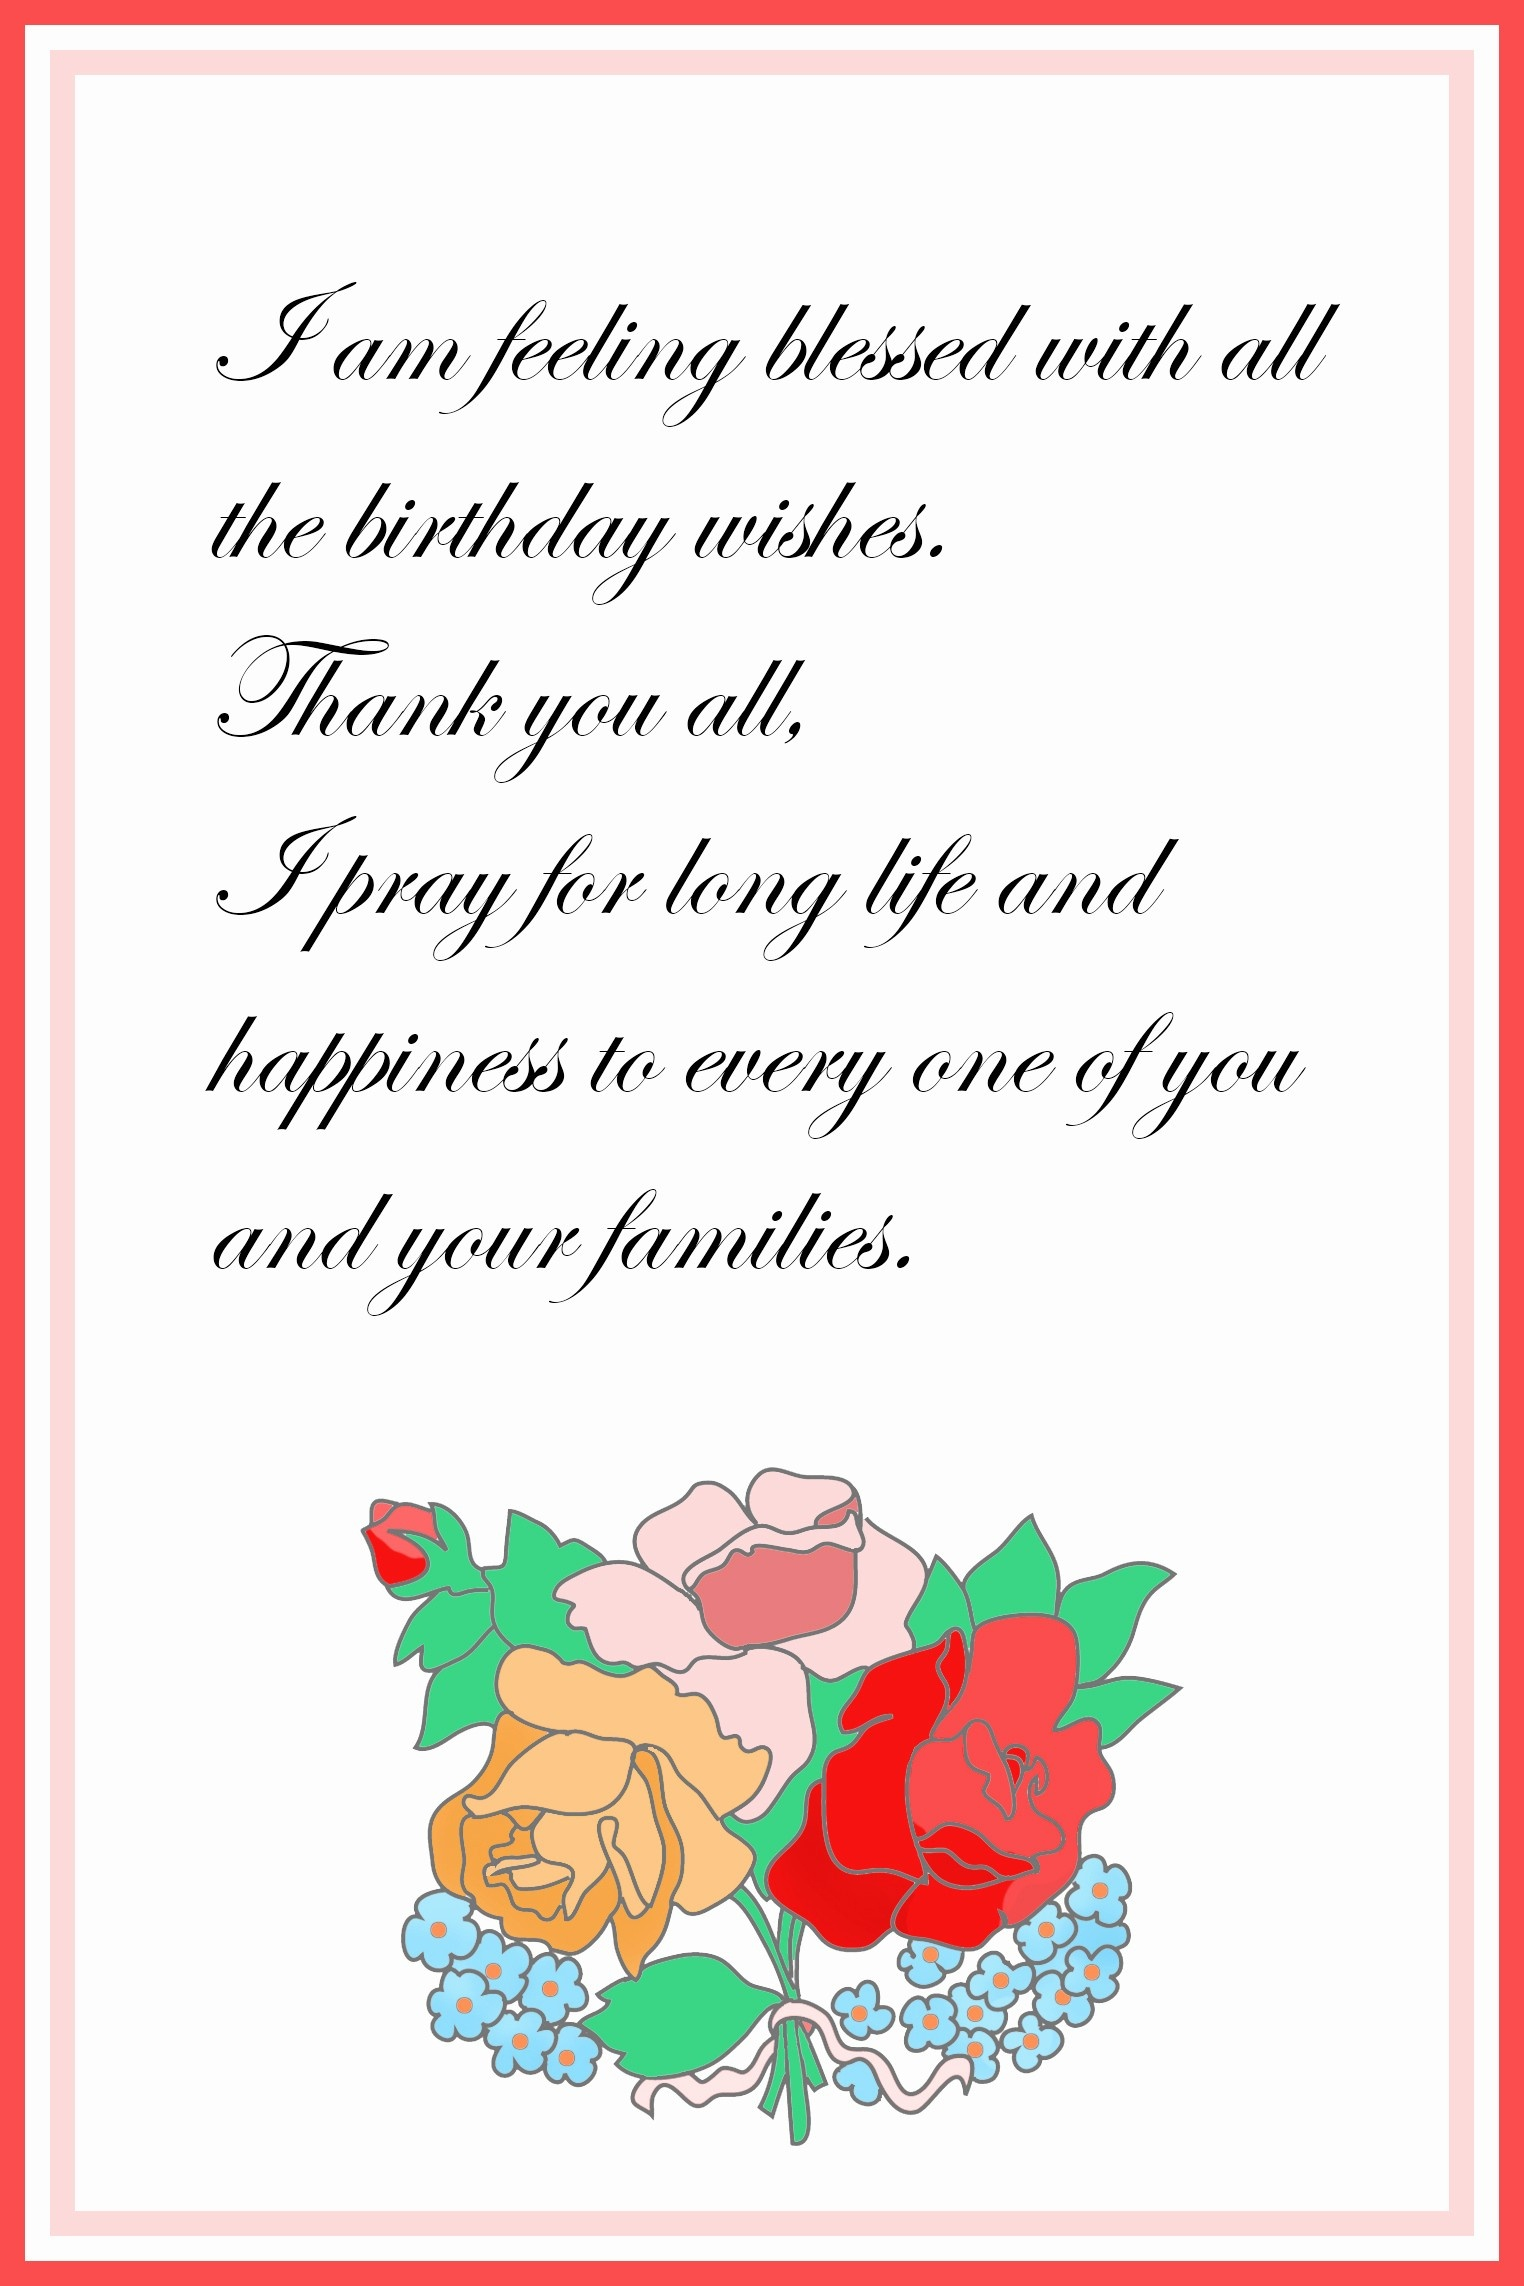 021 Hallmark Thank You Card Template Awesome Printable Free Birthday - Free Printable Hallmark Cards